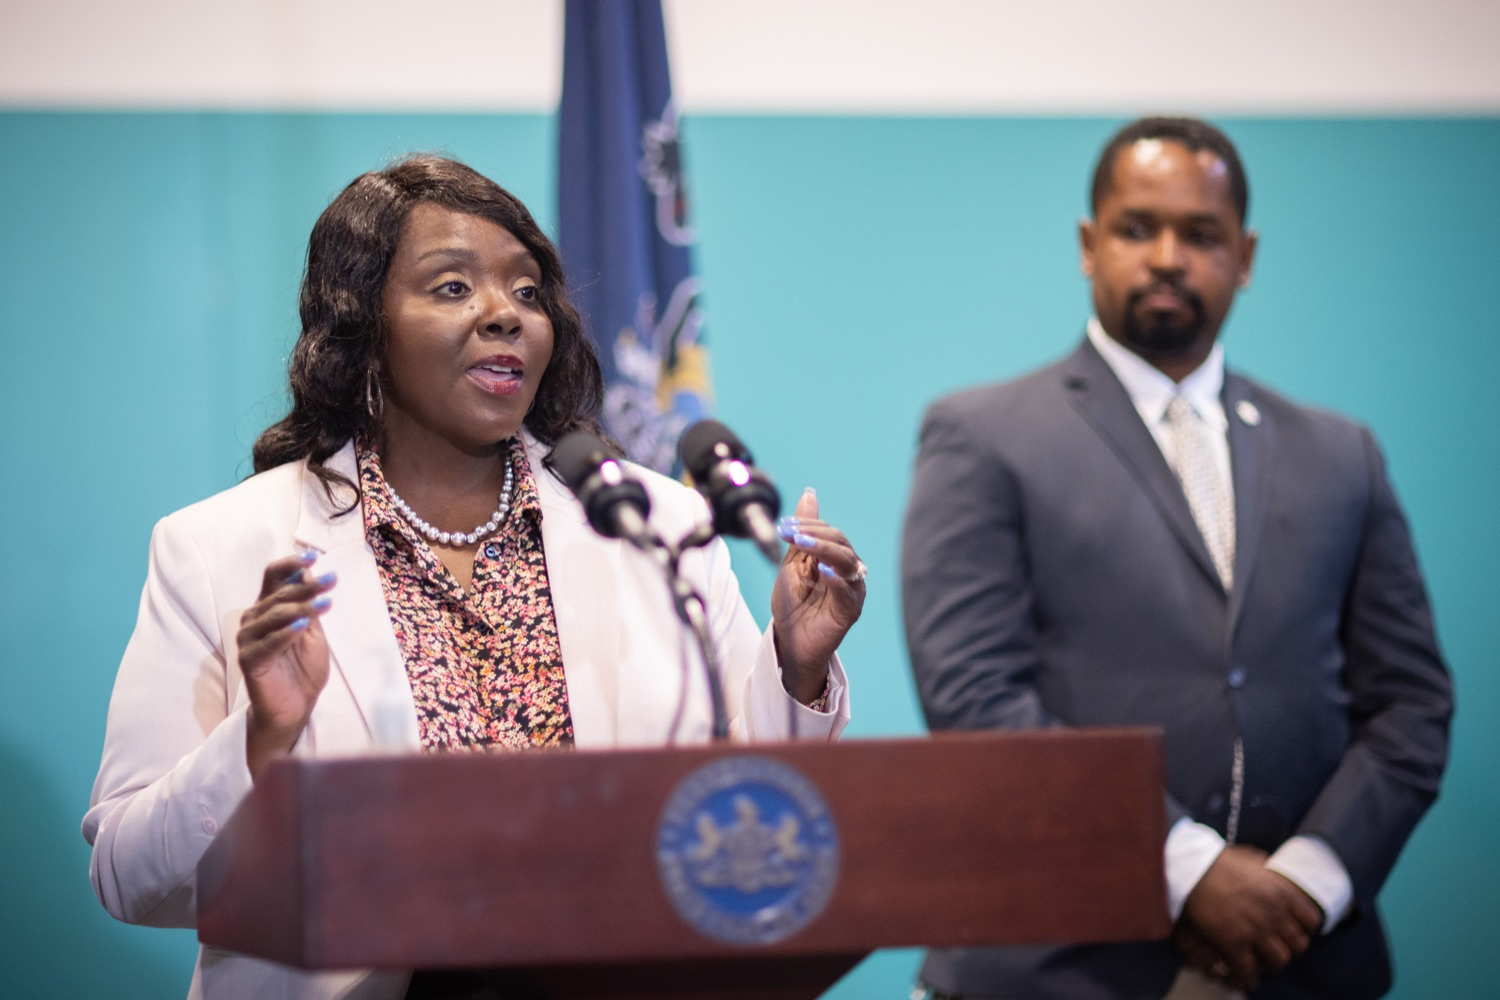 """<a href=""""https://filesource.wostreaming.net/commonwealthofpa/photo/18815_gov_voterRights_dz_018.jpg"""" target=""""_blank"""">⇣Download Photo<br></a>Acting Secretary of the Commonwealth Veronica Degraffenreid, speaking with the press.  With some politicians spreading lies about our elections to divide us, Governor Tom Wolf today vowed to protect the freedom to vote and oppose legislation that would create barriers to voting and silence the voices of some Pennsylvanians. These are the same lies that led directly to the appalling assault on our U.S. Capitol and our democracy on January 6, and now, just a few short months later, the same people who fomented, encouraged, and joined that mob are again emerging to undermine the fabric of our nation.   Harrisburg, PA  June 9, 2021"""